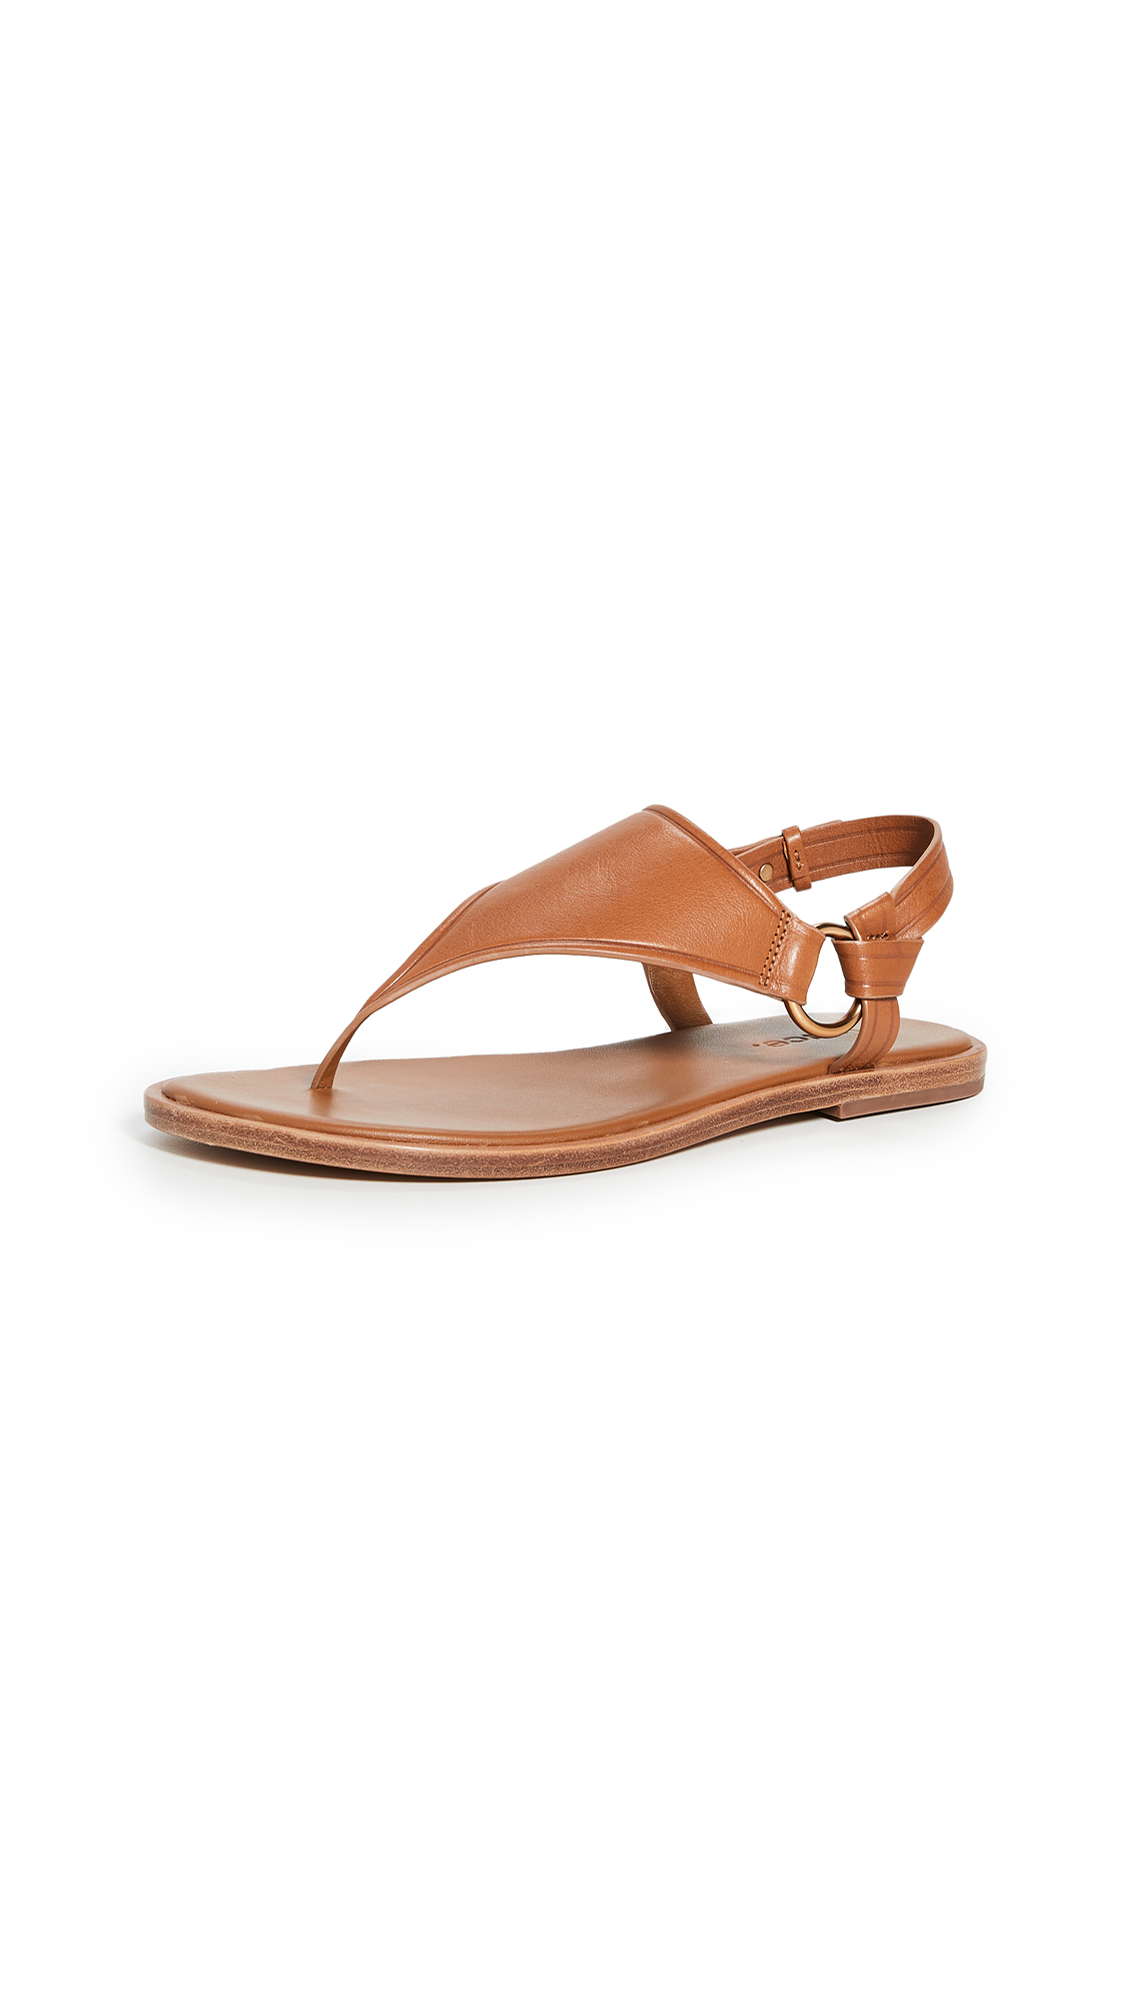 Vince Pharis Sandals - 40% Off Sale